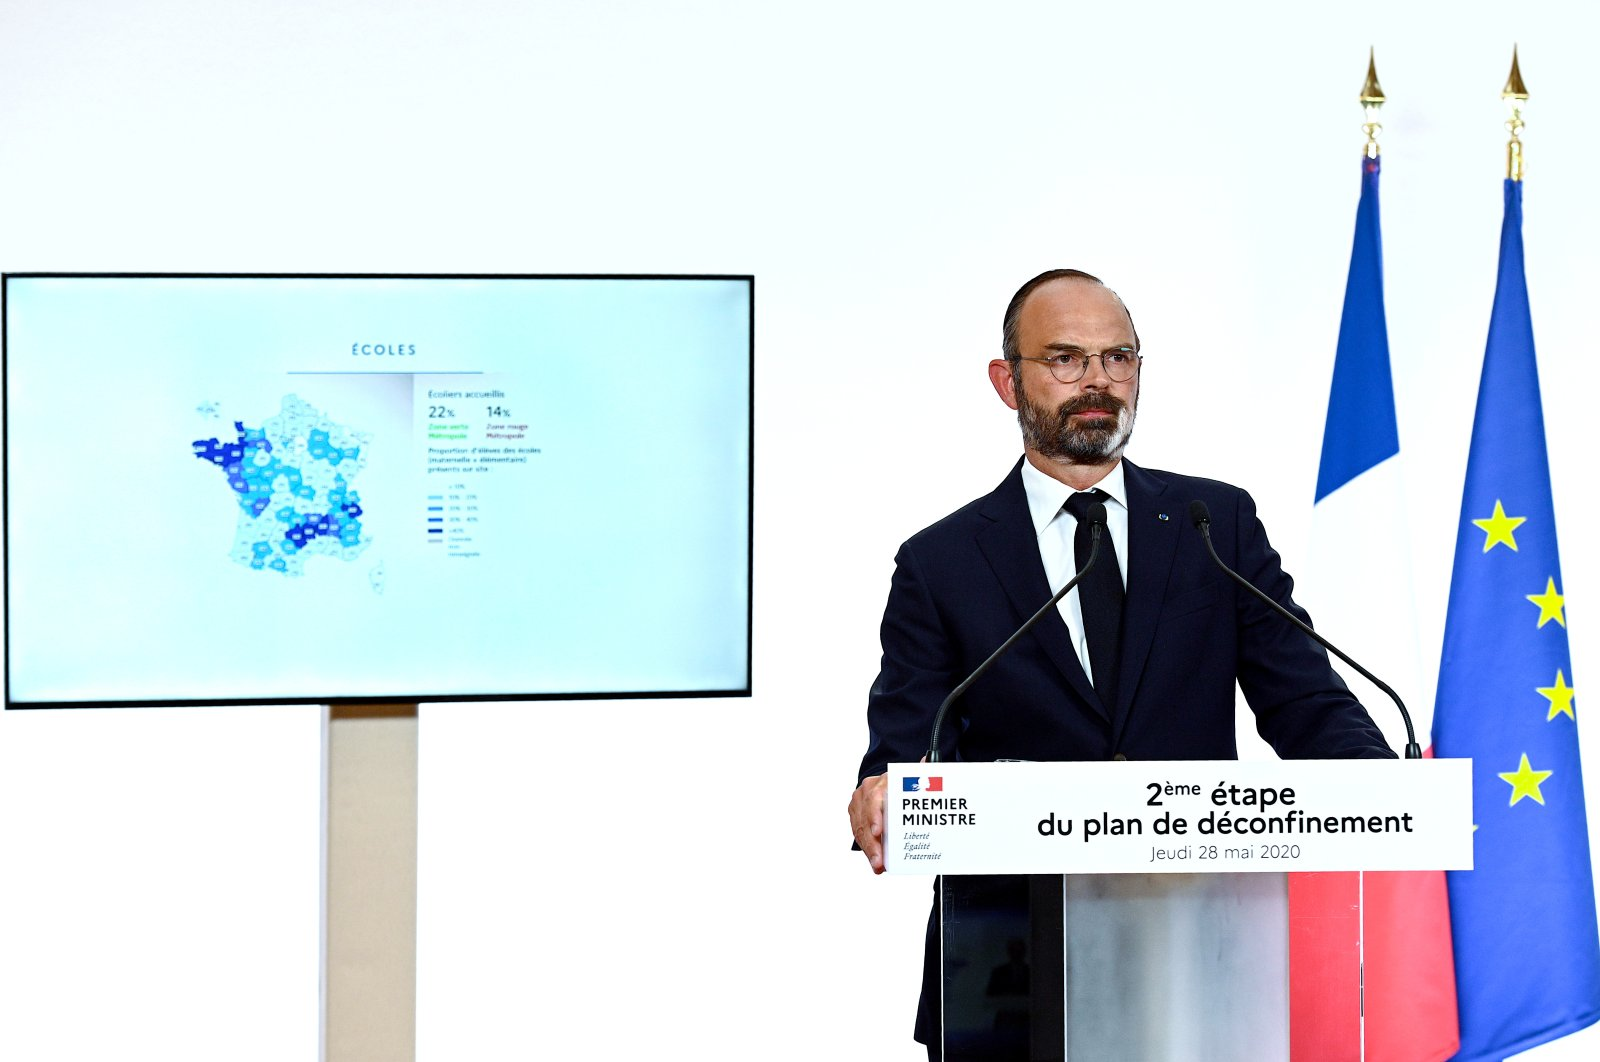 French Prime Minister Edouard Philippe attends a televised address to announce the second phase of the easing of lockdown measures amid the spread of the coronavirus disease (COVID-19) from June 2, at the Hotel Matignon in Paris, France May 28, 2020. (REUTERS Photo)